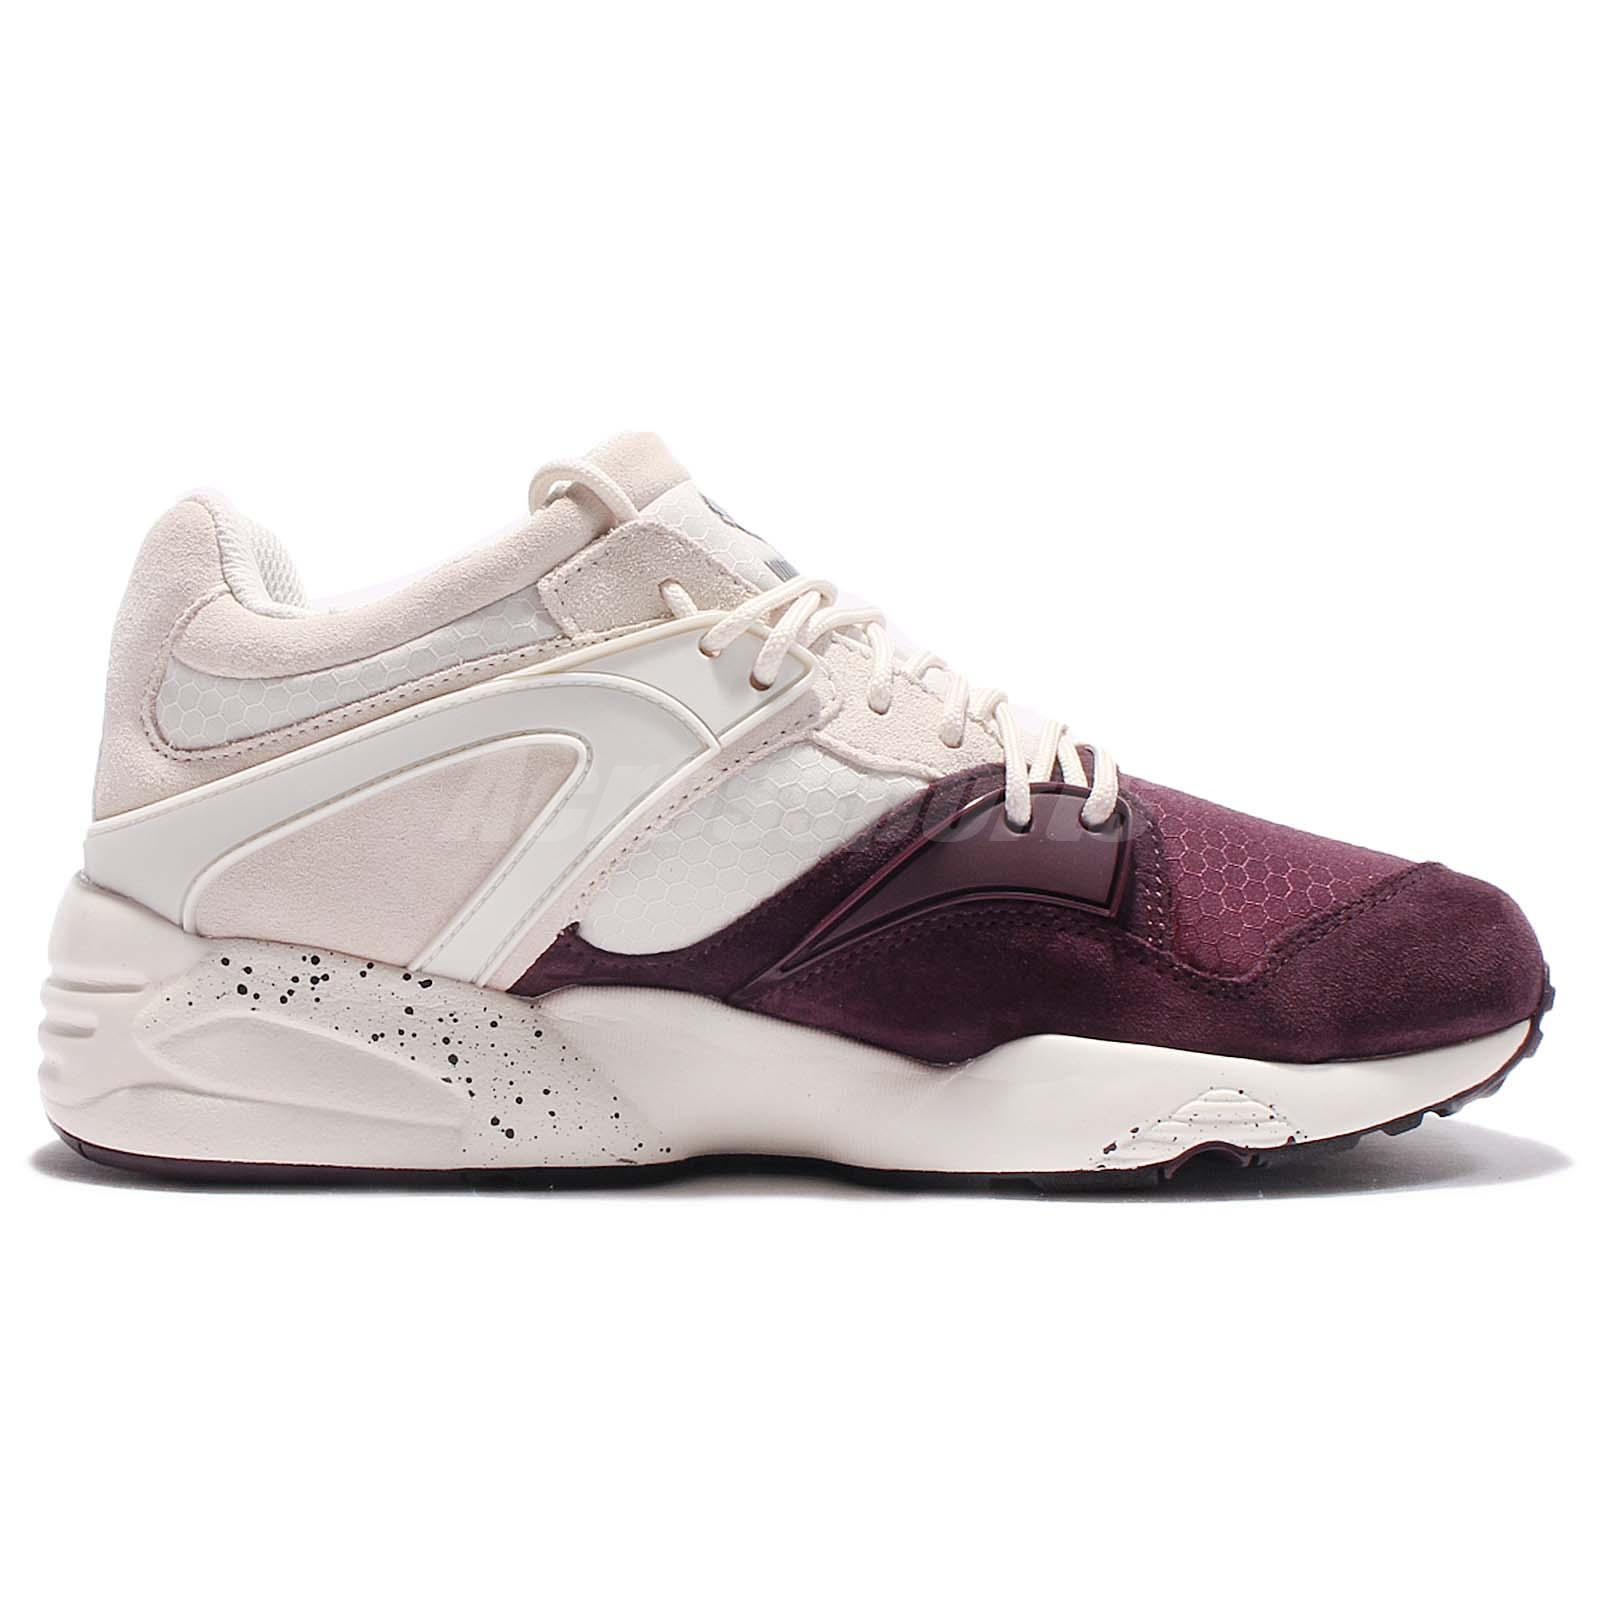 Détails 361341 03 Trainers Men White Shoe Puma Purple Tech Winter Sur Trinomic Blaze Running SMVpqUzG